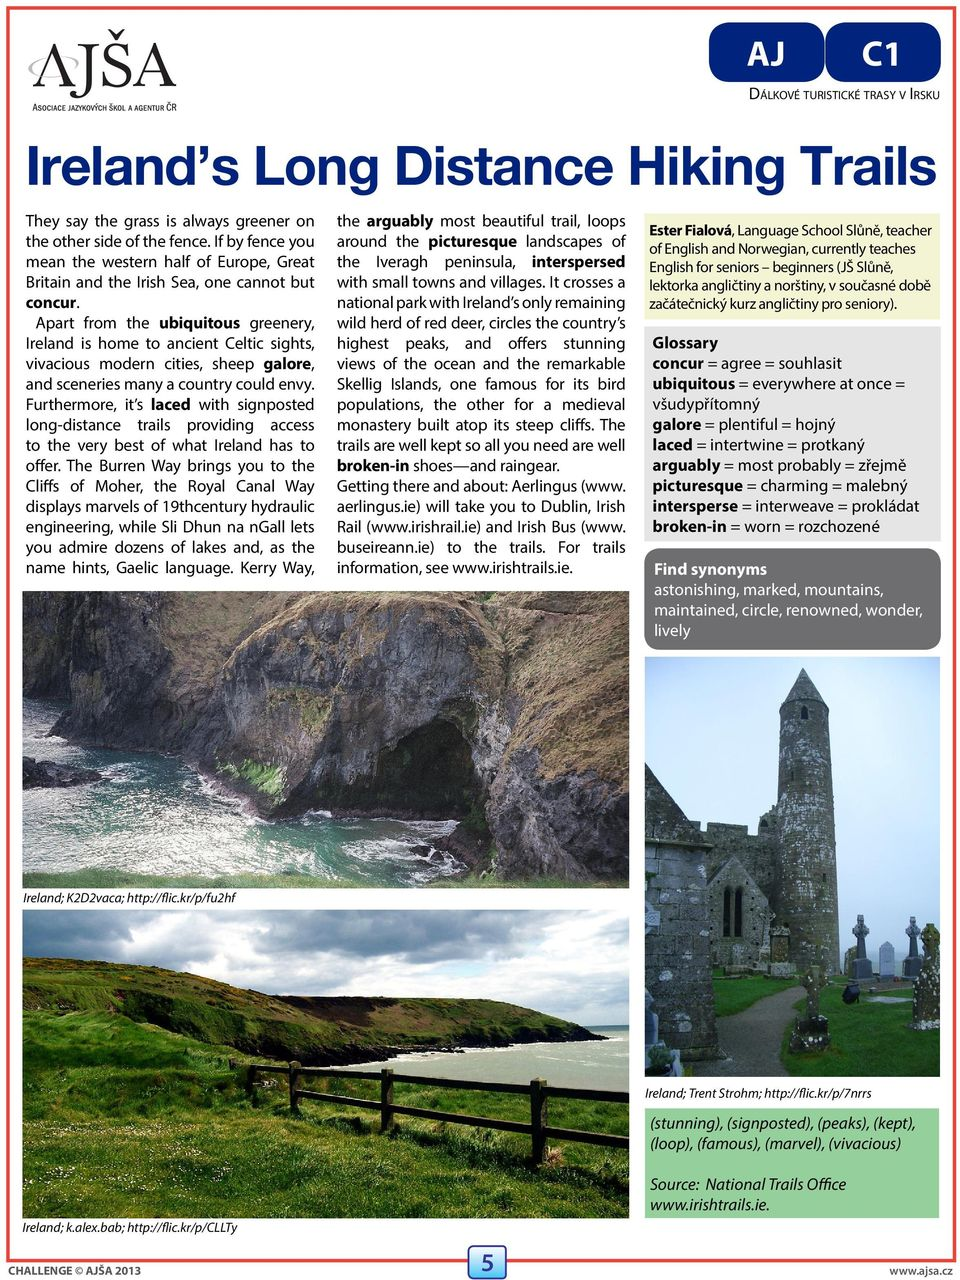 Furthermore, it s laced with signposted long-distance trails providing access to the very best of what Ireland has to offer.